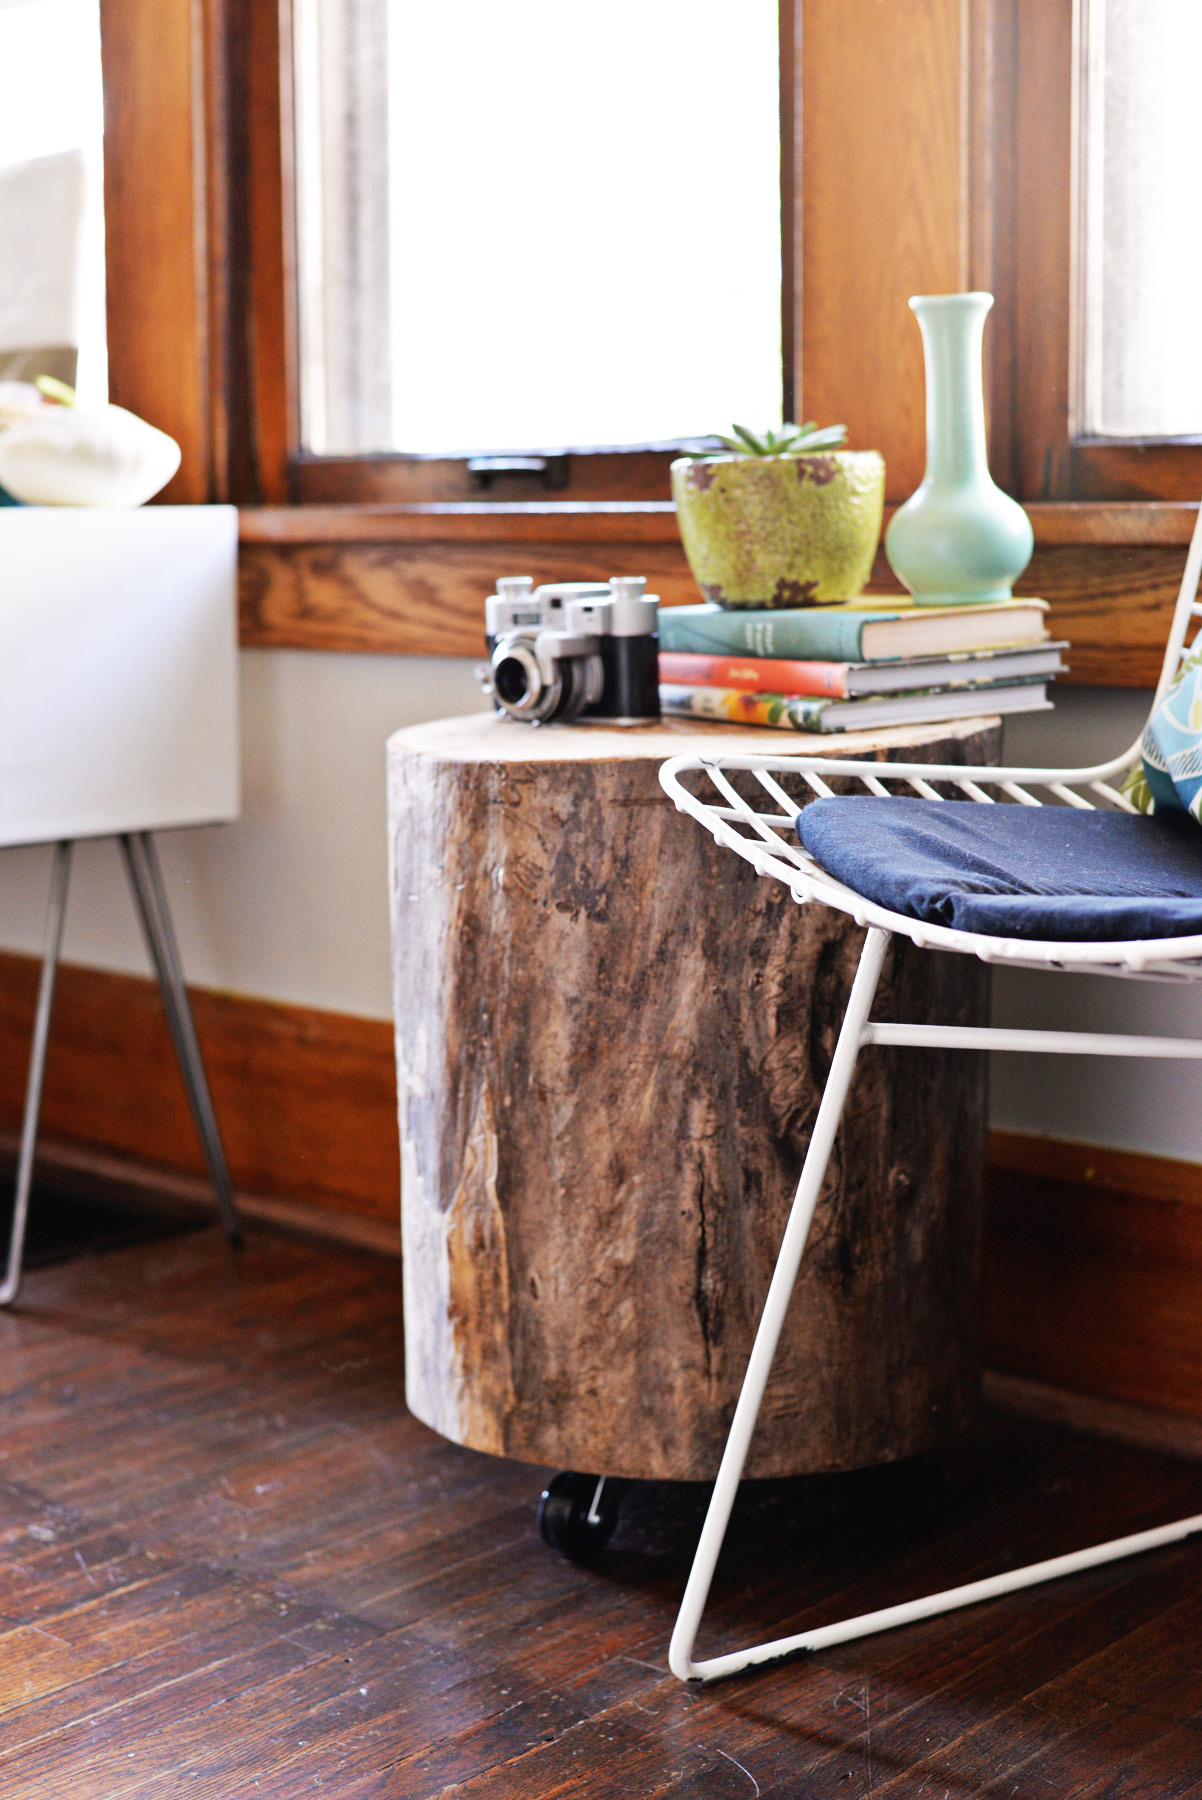 diy tree stump side table wood log accent front entry furniture inch deep console white entryway beautiful bedroom sets luggage rack designer placemats and napkins high end tables